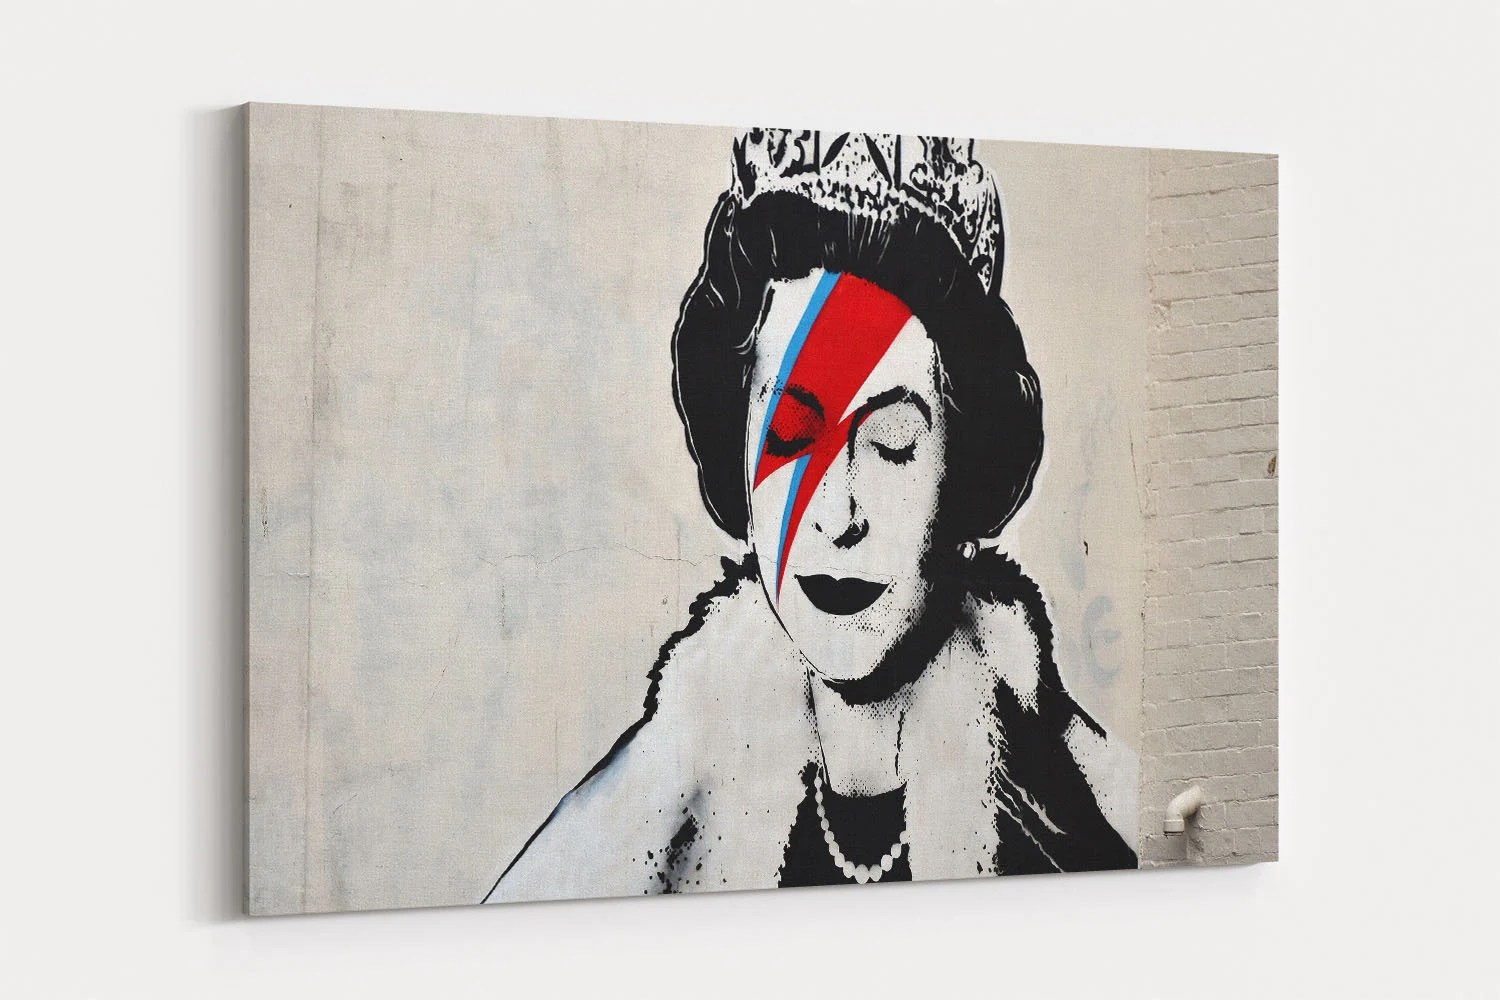 Banksy Canvas Art Queen Banksy Street Art Canvas Wall Art Banksy Graffiti Canvas Prints Canvas Art Painting Wall Decor Artwork Decal